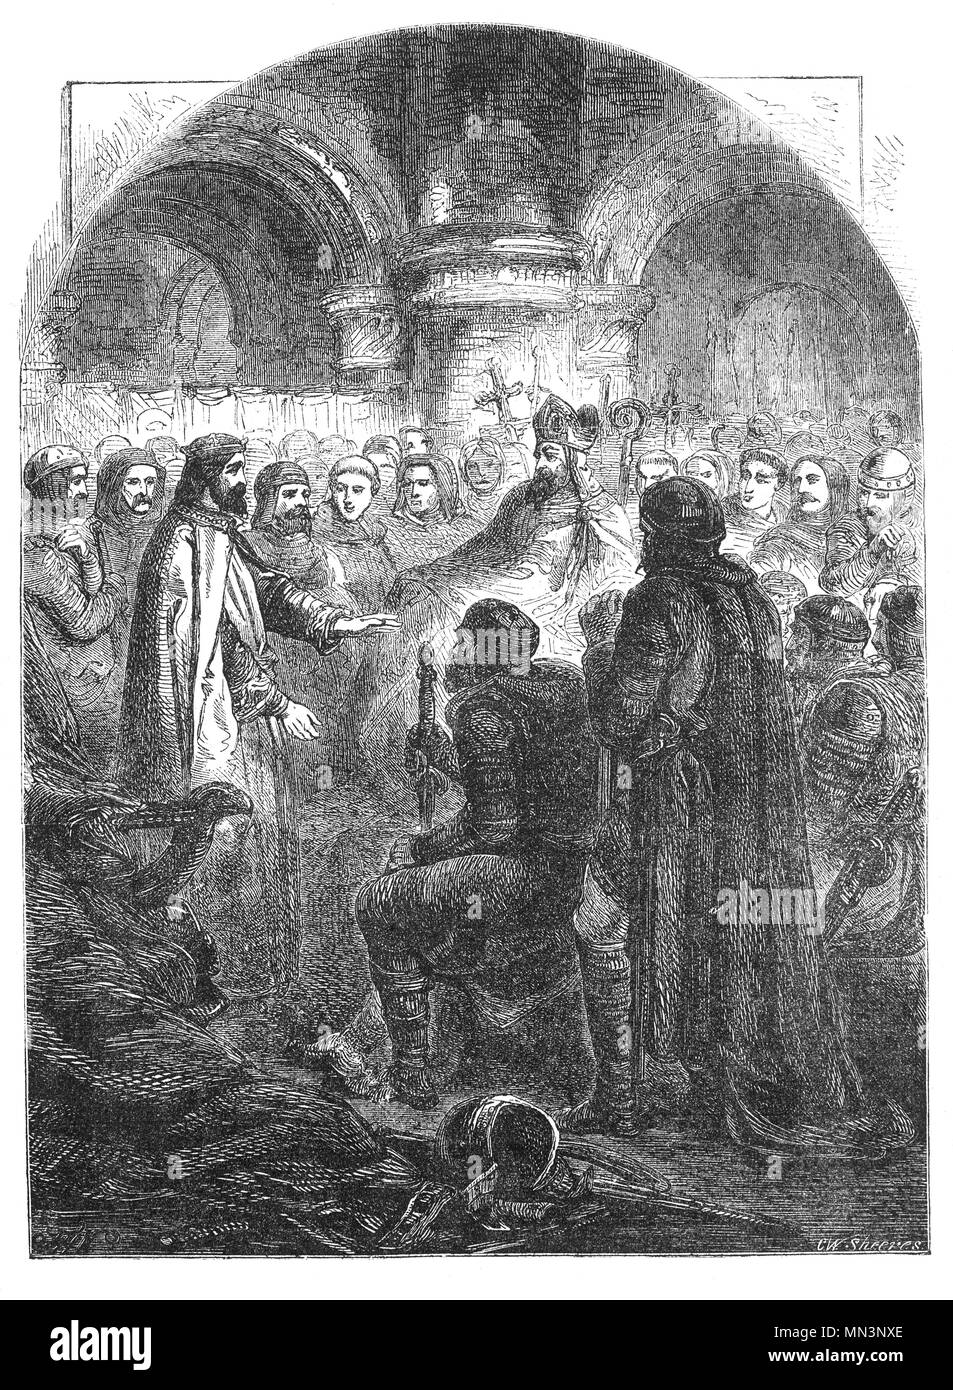 The Councils of Clovesho or Clofesho were a series of synods